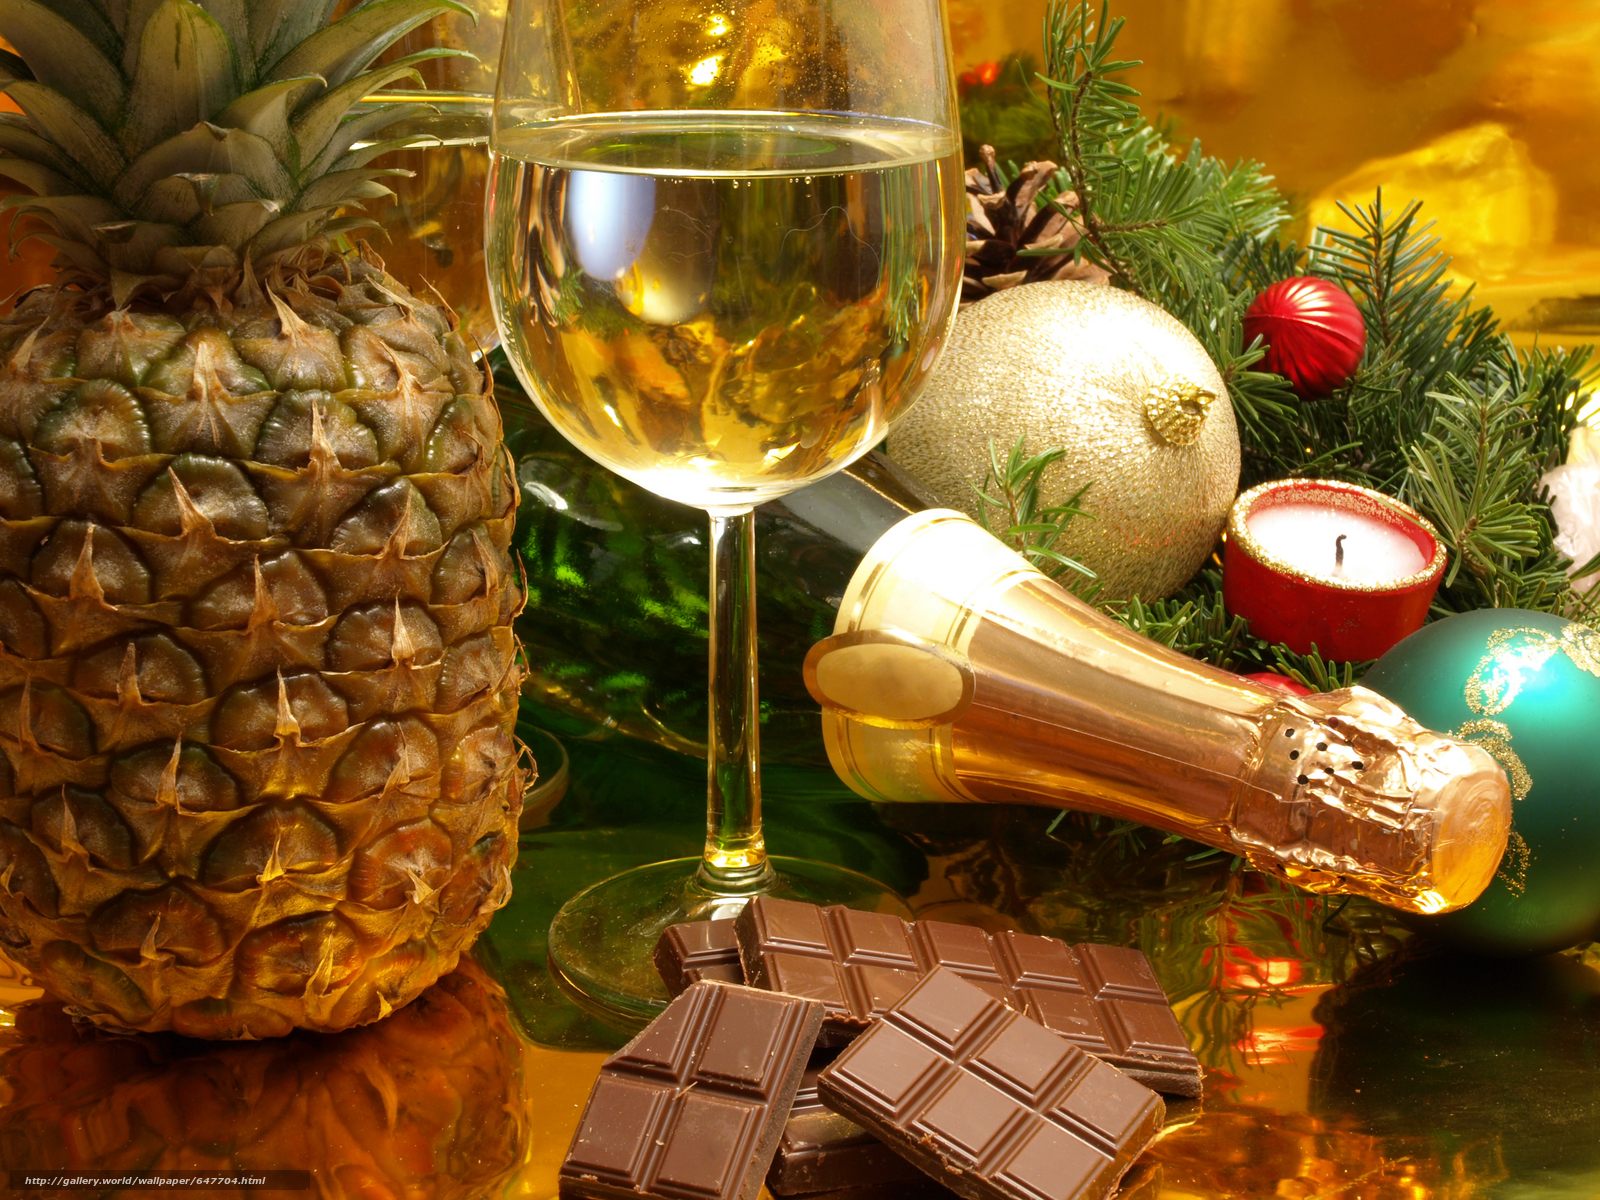 Download wallpaper New Year's table,  Champagne,  stemware free desktop wallpaper in the resolution 7296x5472 — picture №647704